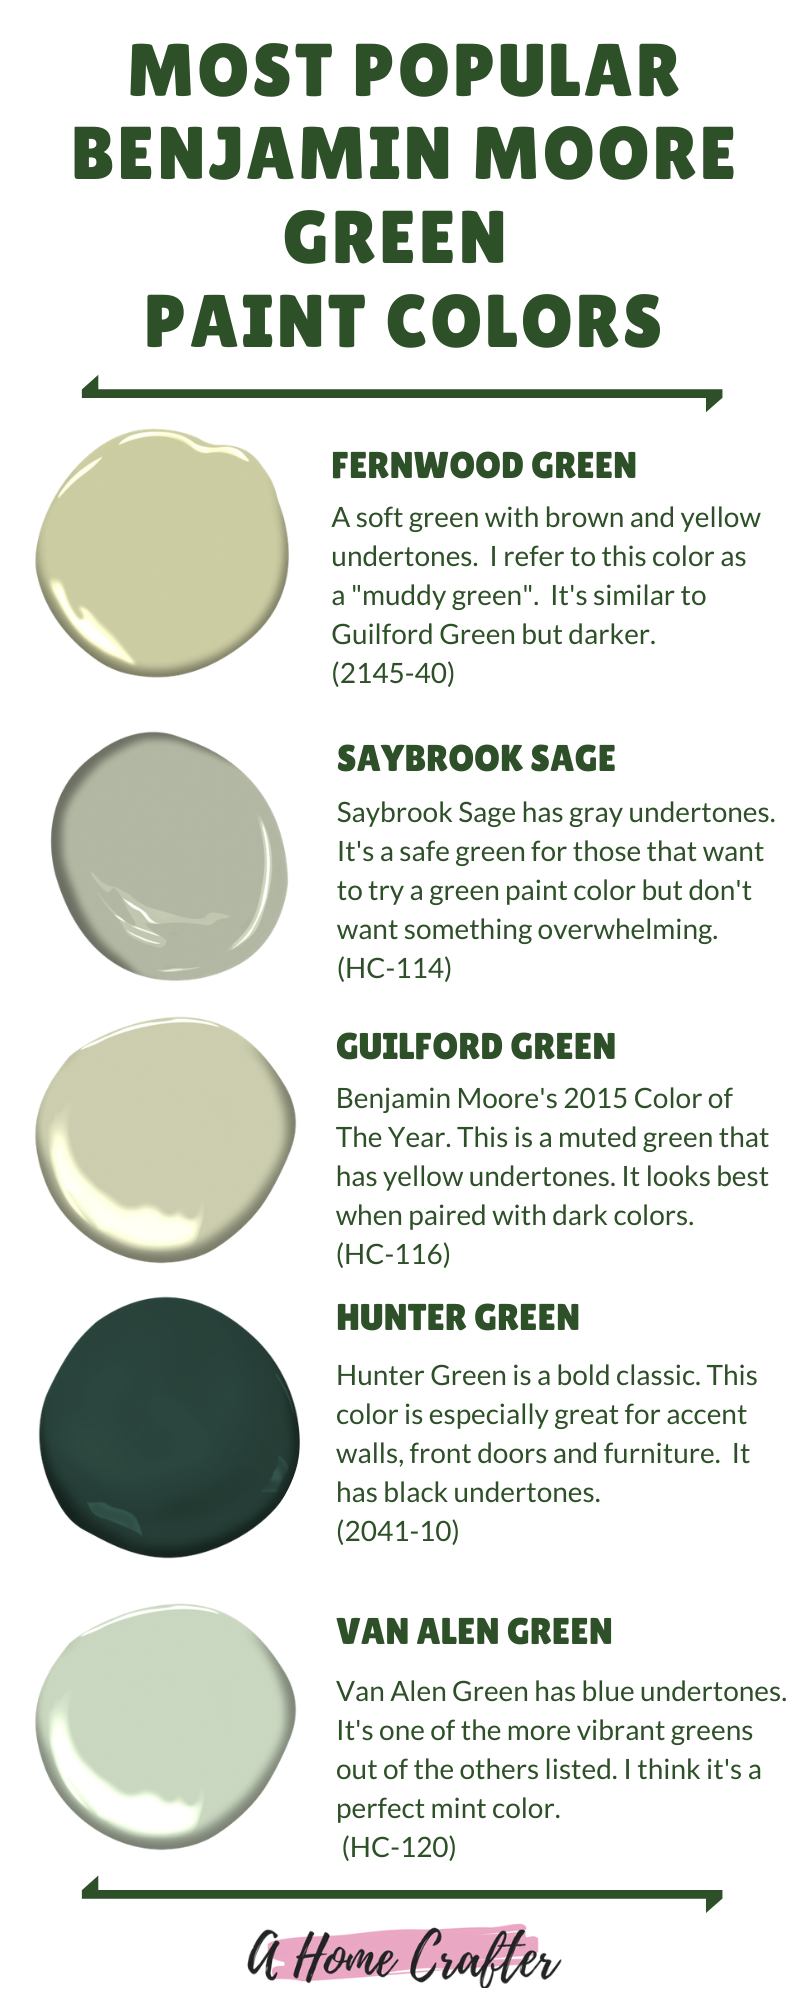 Most Popular Green Paint Colors For 2020 In 2020 Green Paint Colors Green Paint Colors Benjamin Moore Sage Green Paint